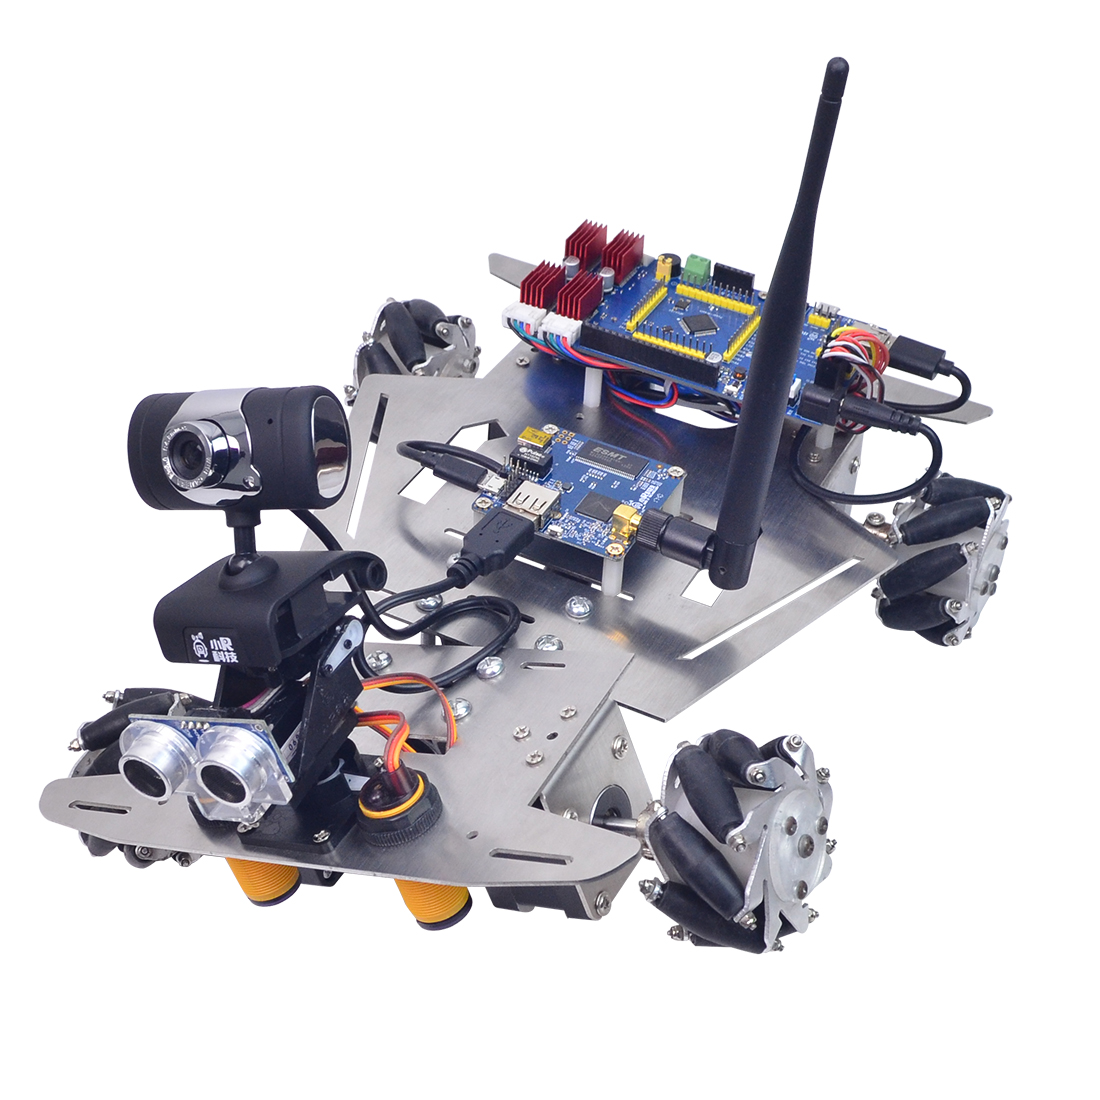 MODIKER Programmable Toys FOR XR Master Omni-directional Mecanum Wheel Robot High Tech Toys - WIFI Version